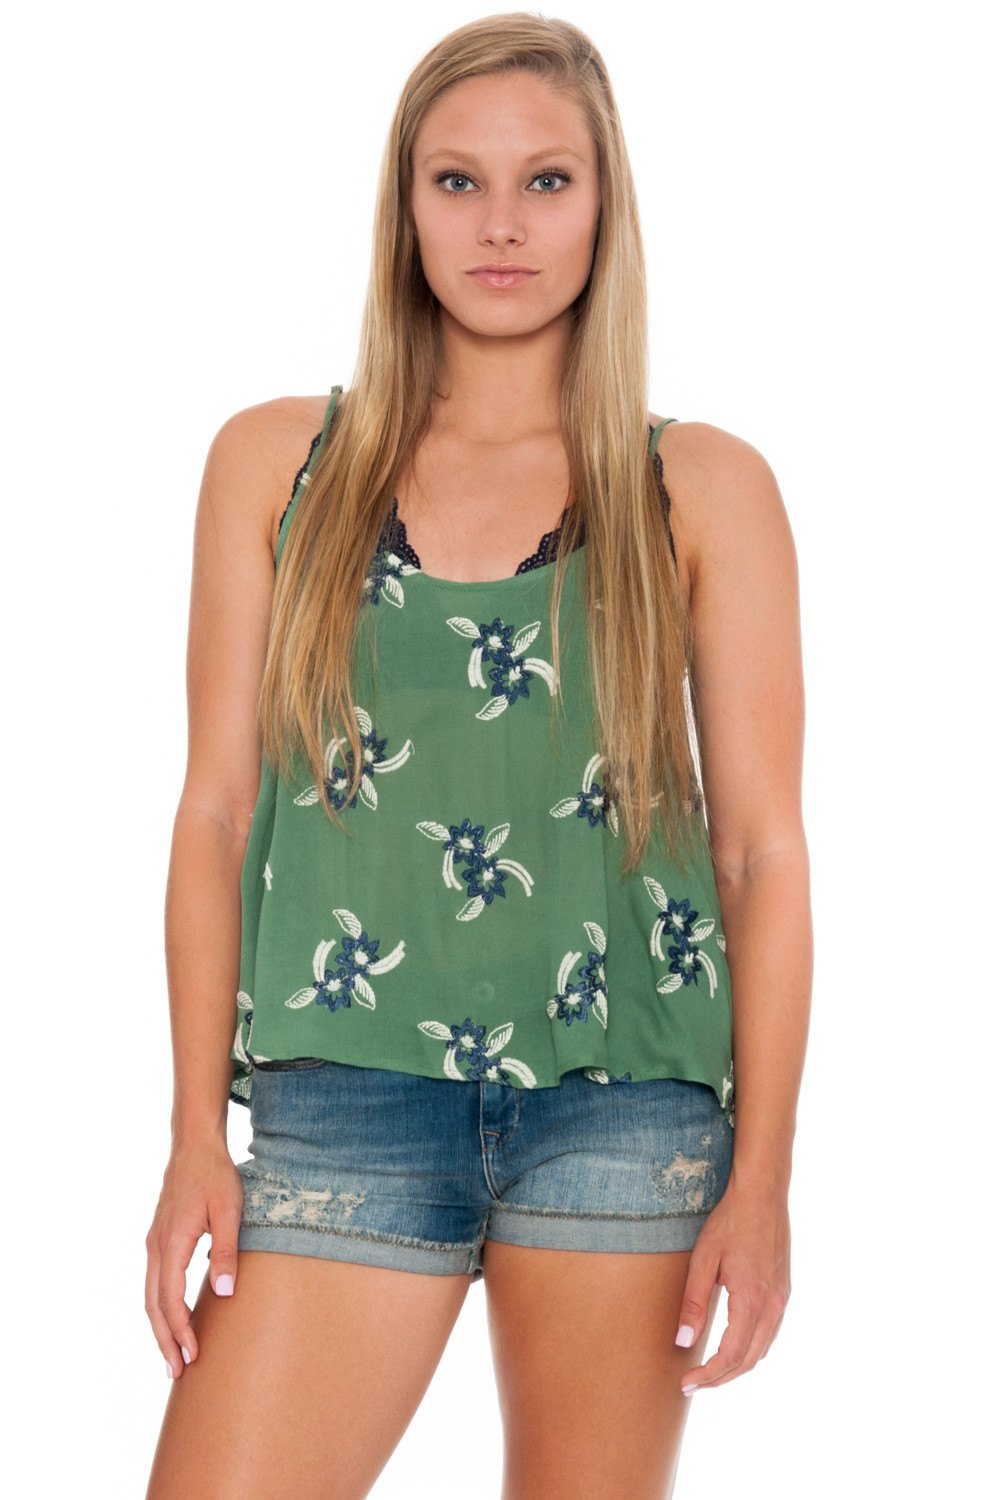 Top - Shear Green with Open Back - 1